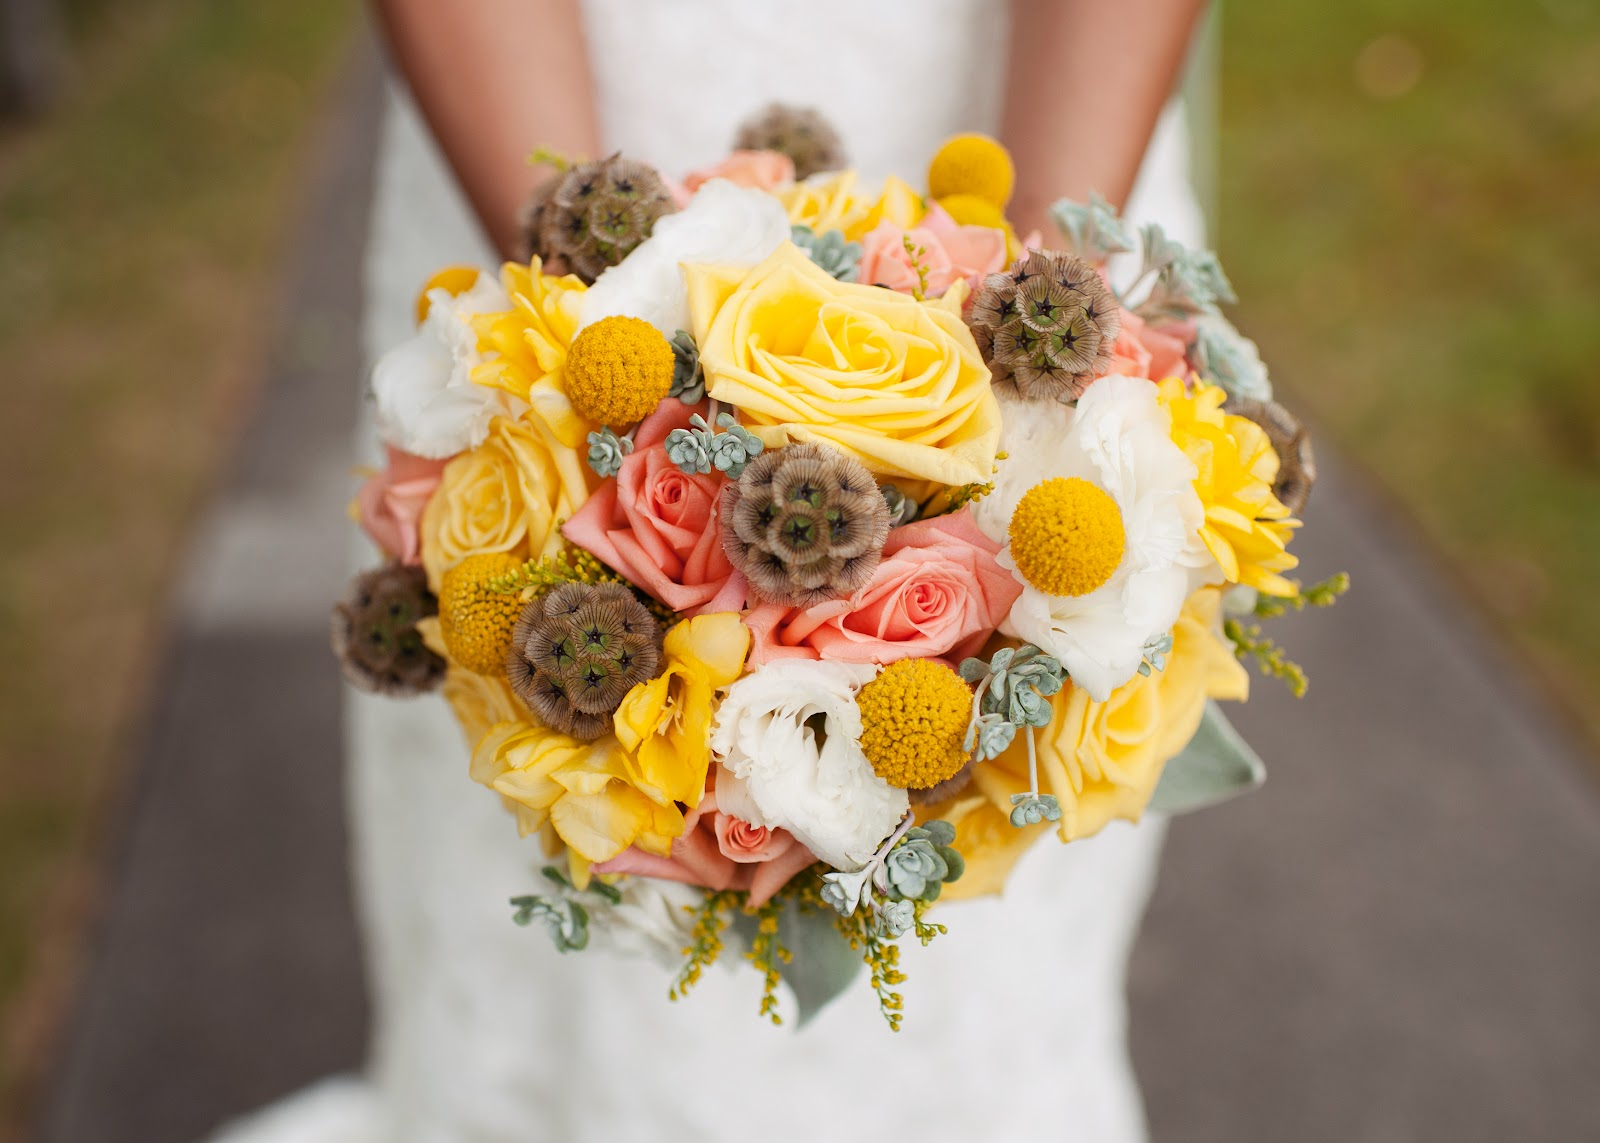 Gorgeous-bridal-bouquet-with-yellow-peach-roses-soft-lambs-ear.original